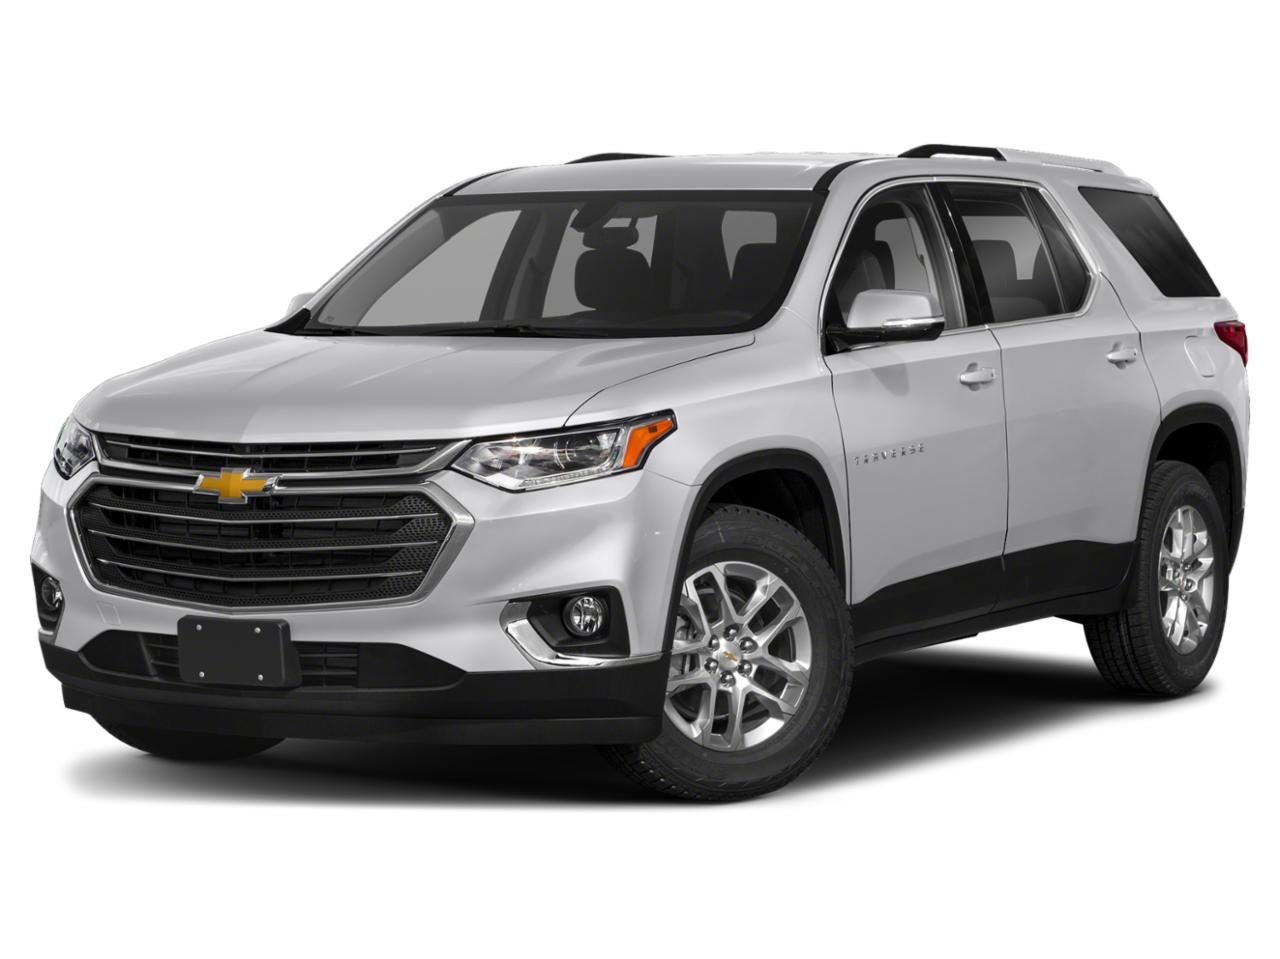 2020 Chevrolet Traverse LT SUV Slide